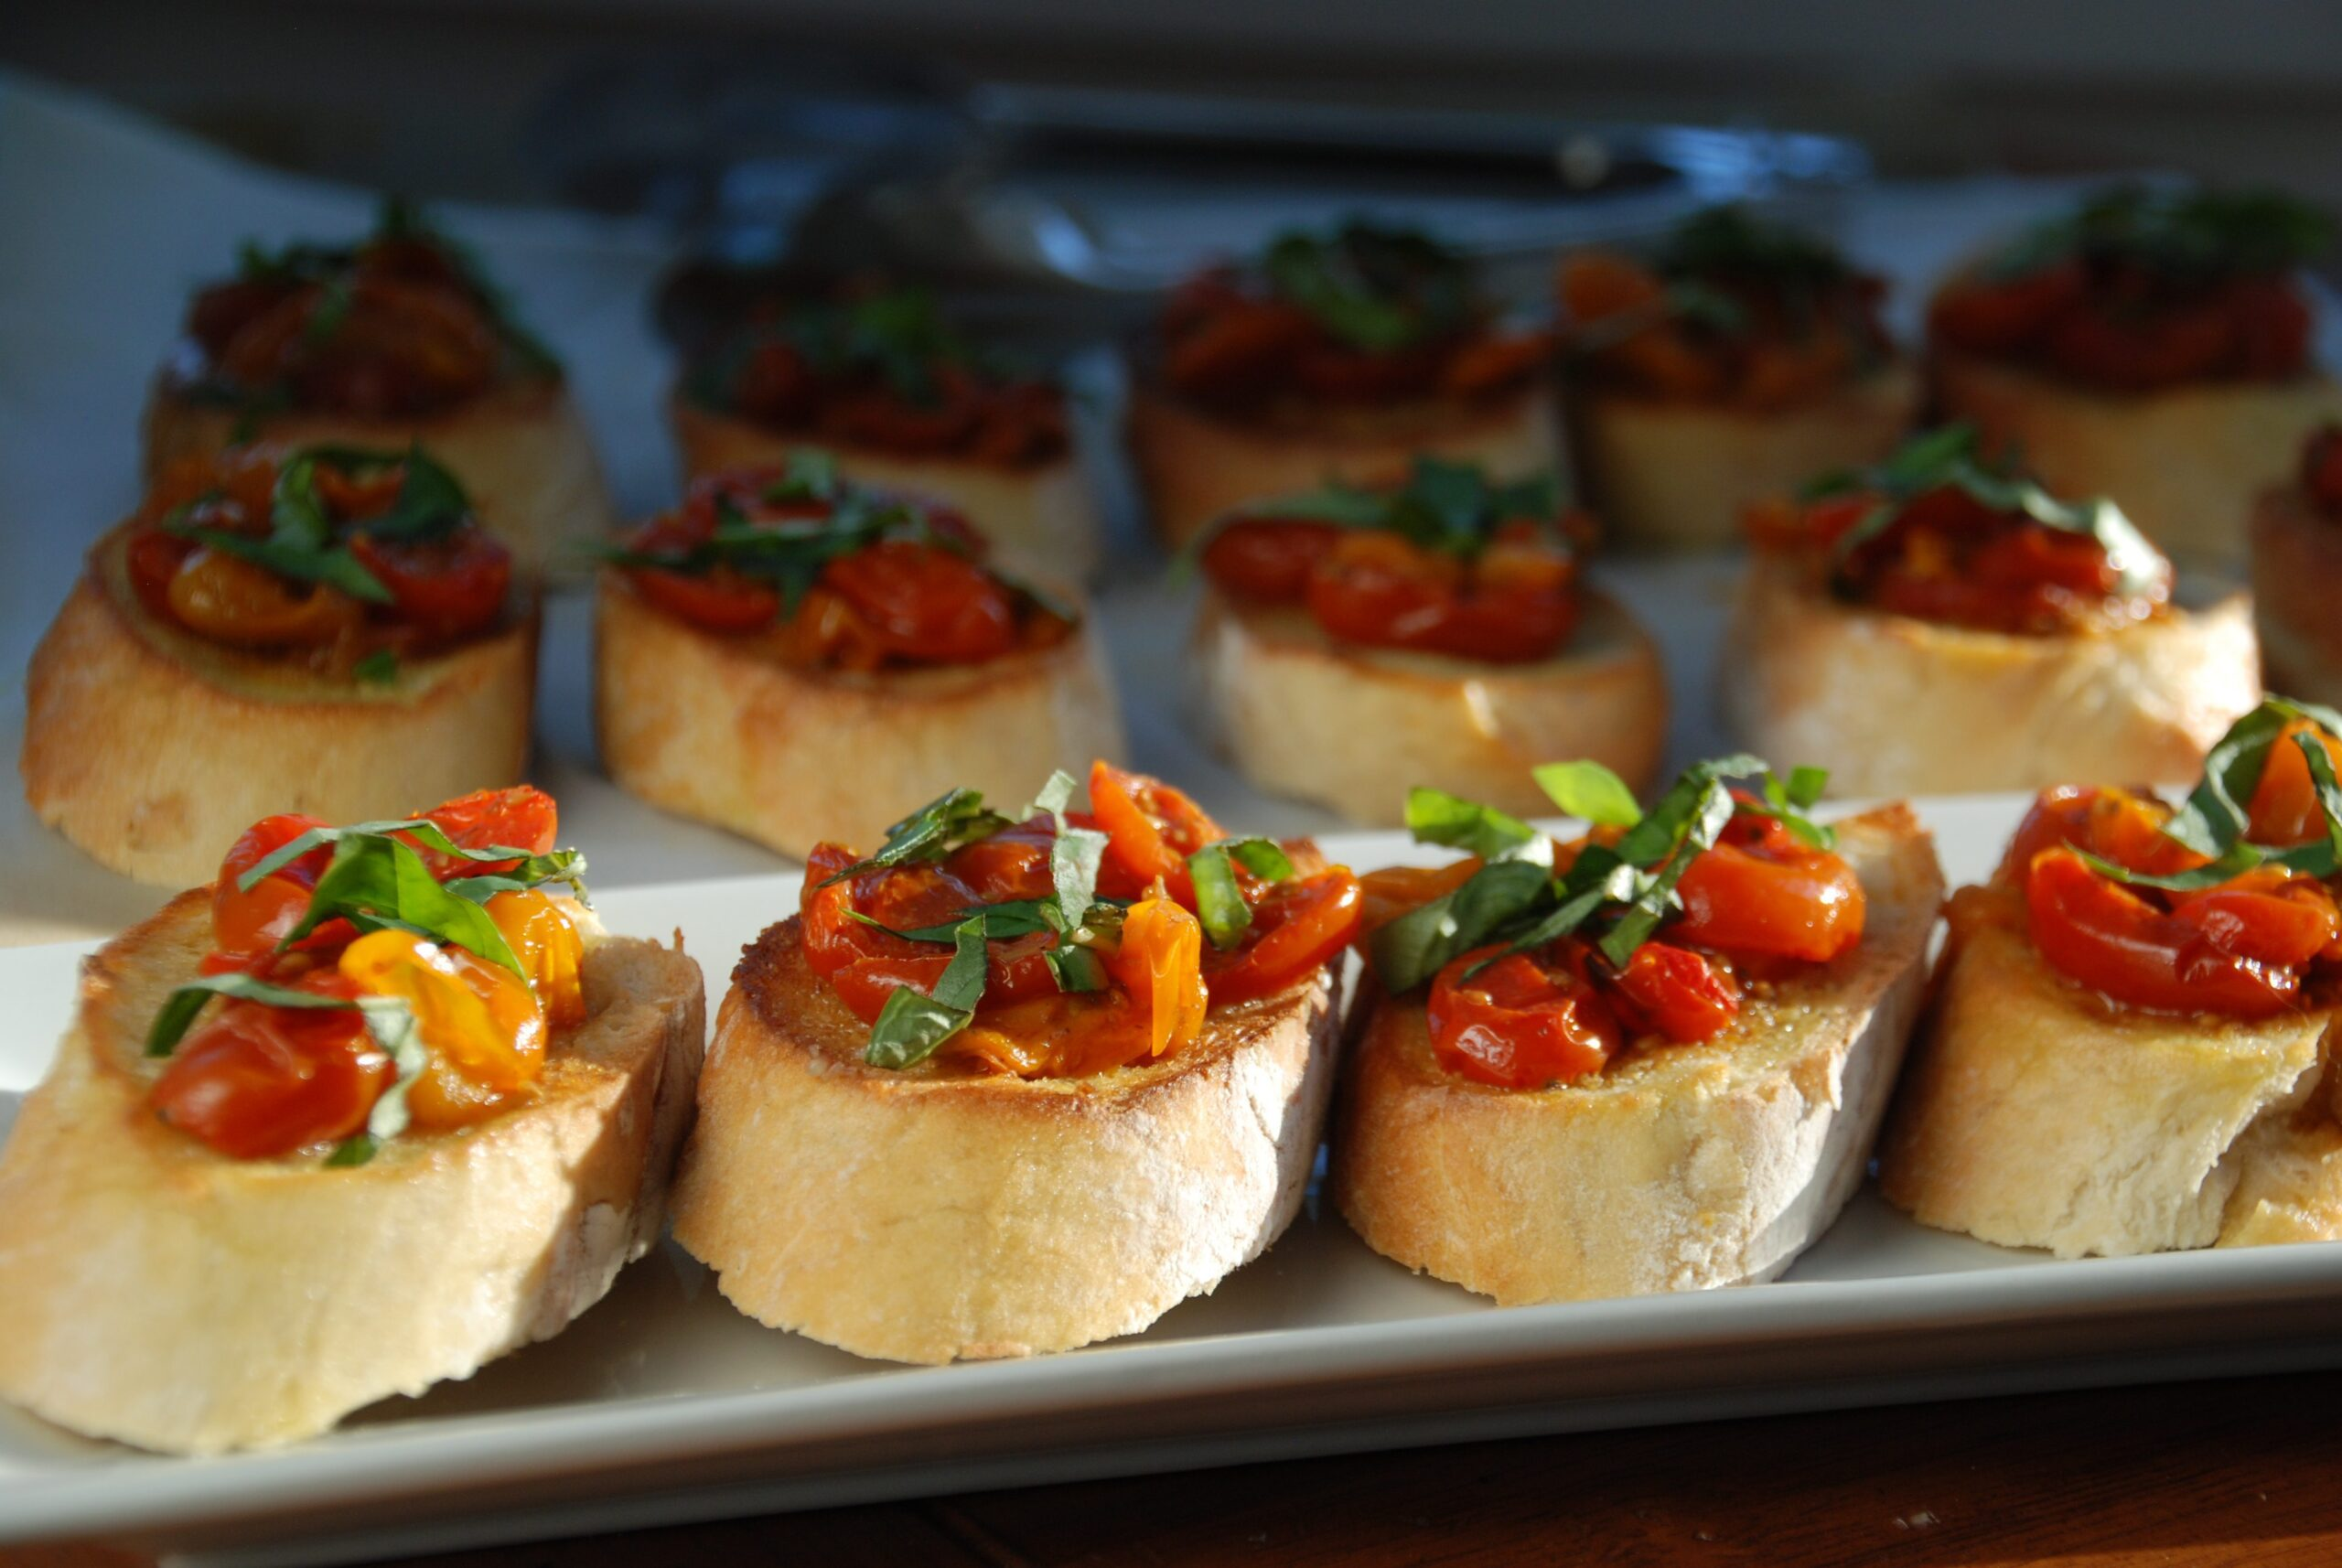 Manischewitz Roasted Tomato & Garlic Bruschetta